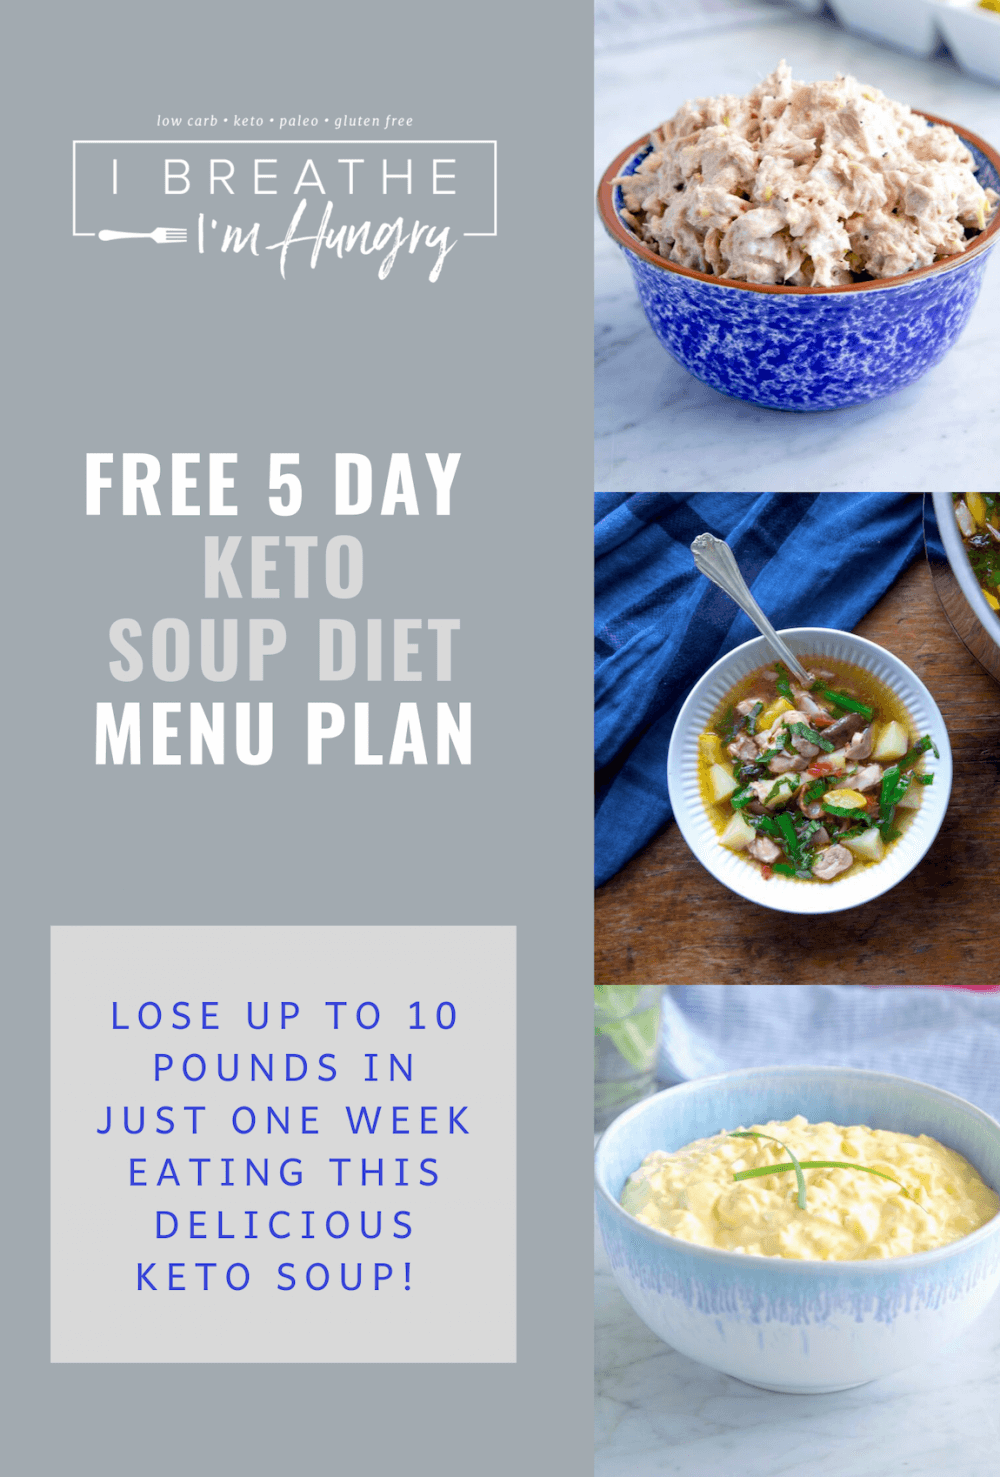 IBIH 5 Day Keto Soup Diet Poster